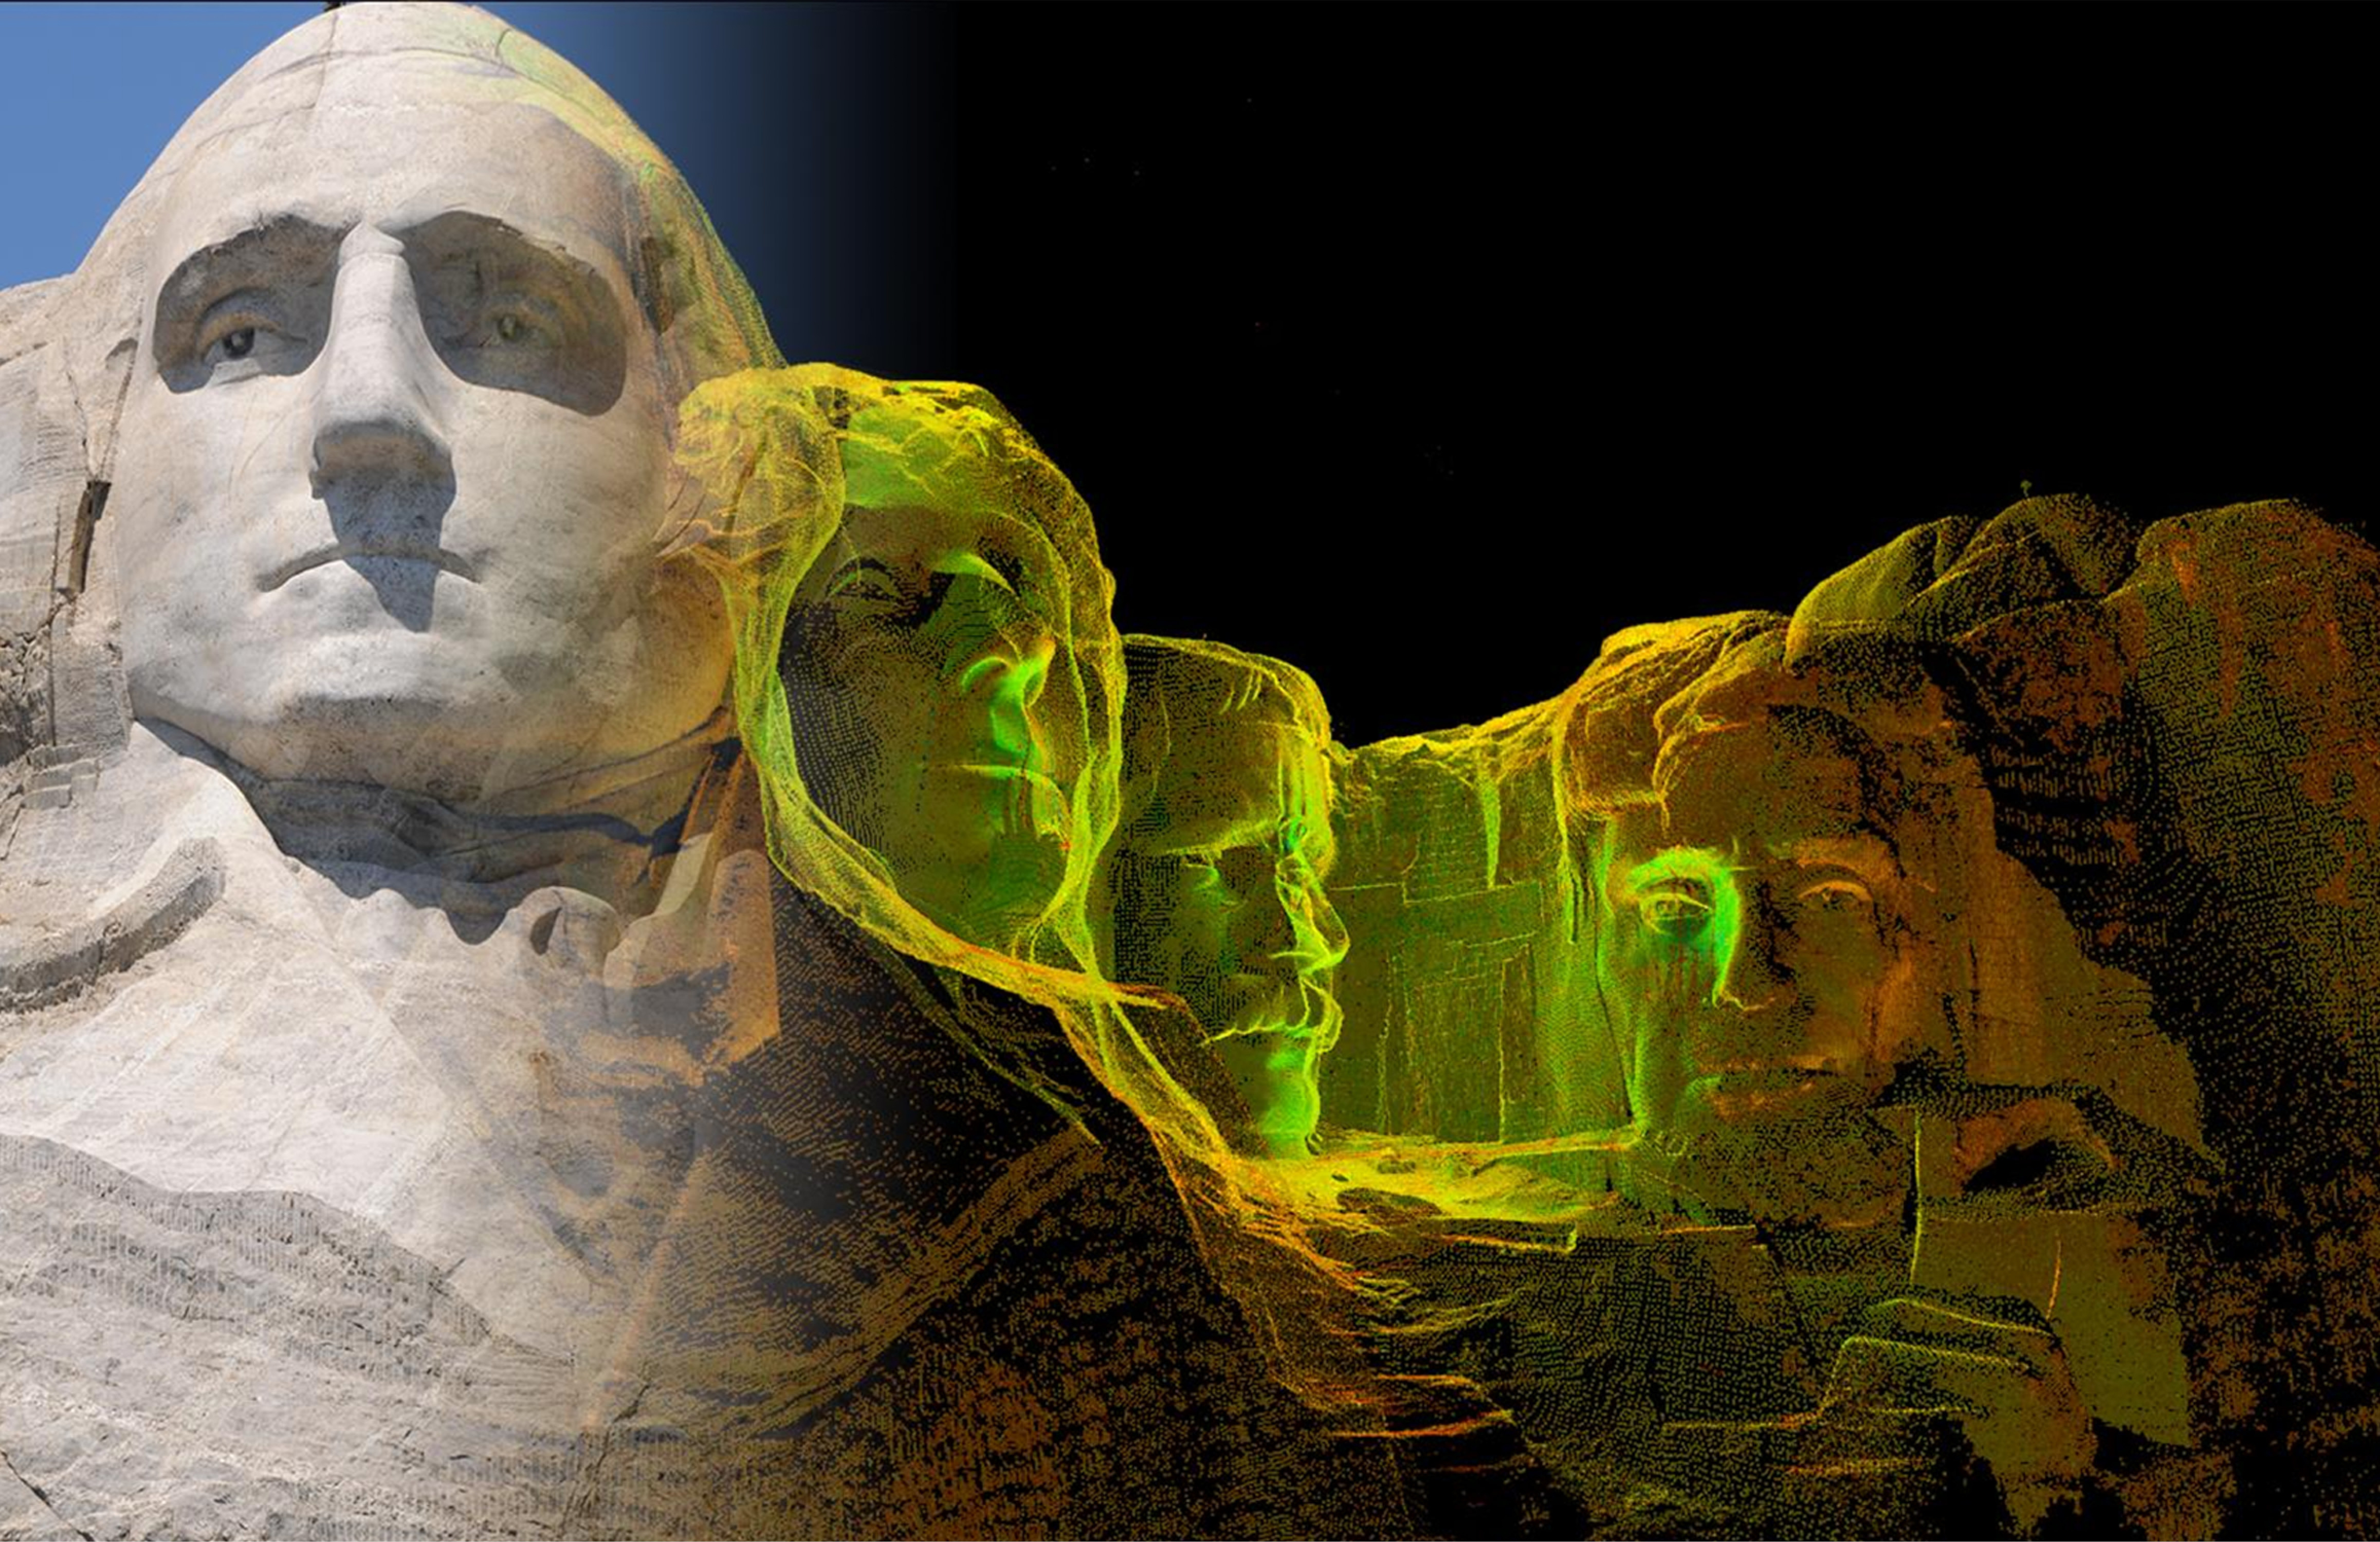 Laser scan in CyArk's archive from field work done at Mount Rushmore in the U.S. Image by CyArk